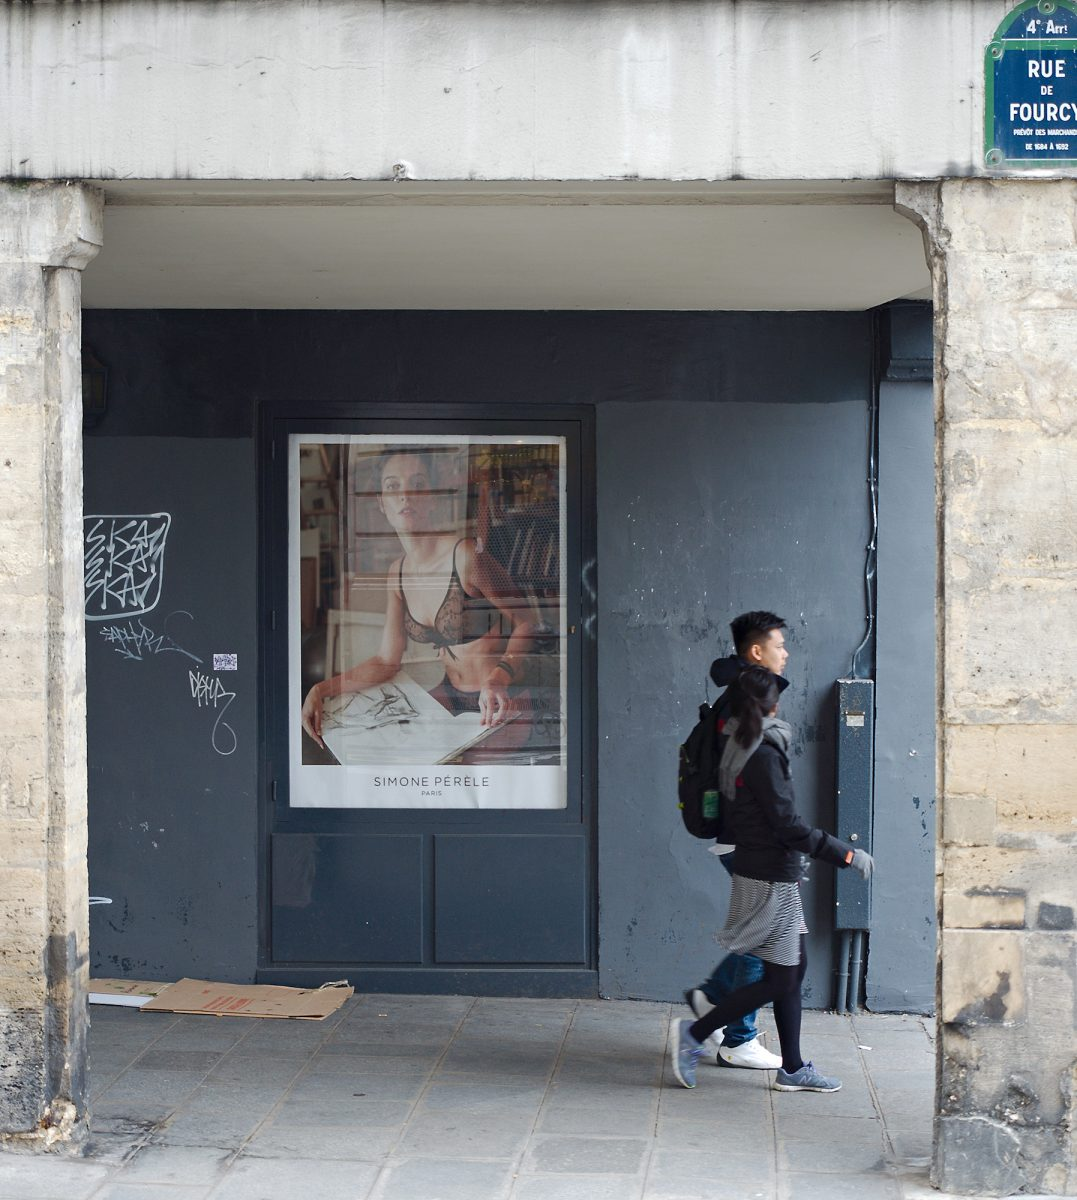 Hidden Dialogue, Rue de Fourcy, Paris, France, Urban, Advertisement, Lingerie